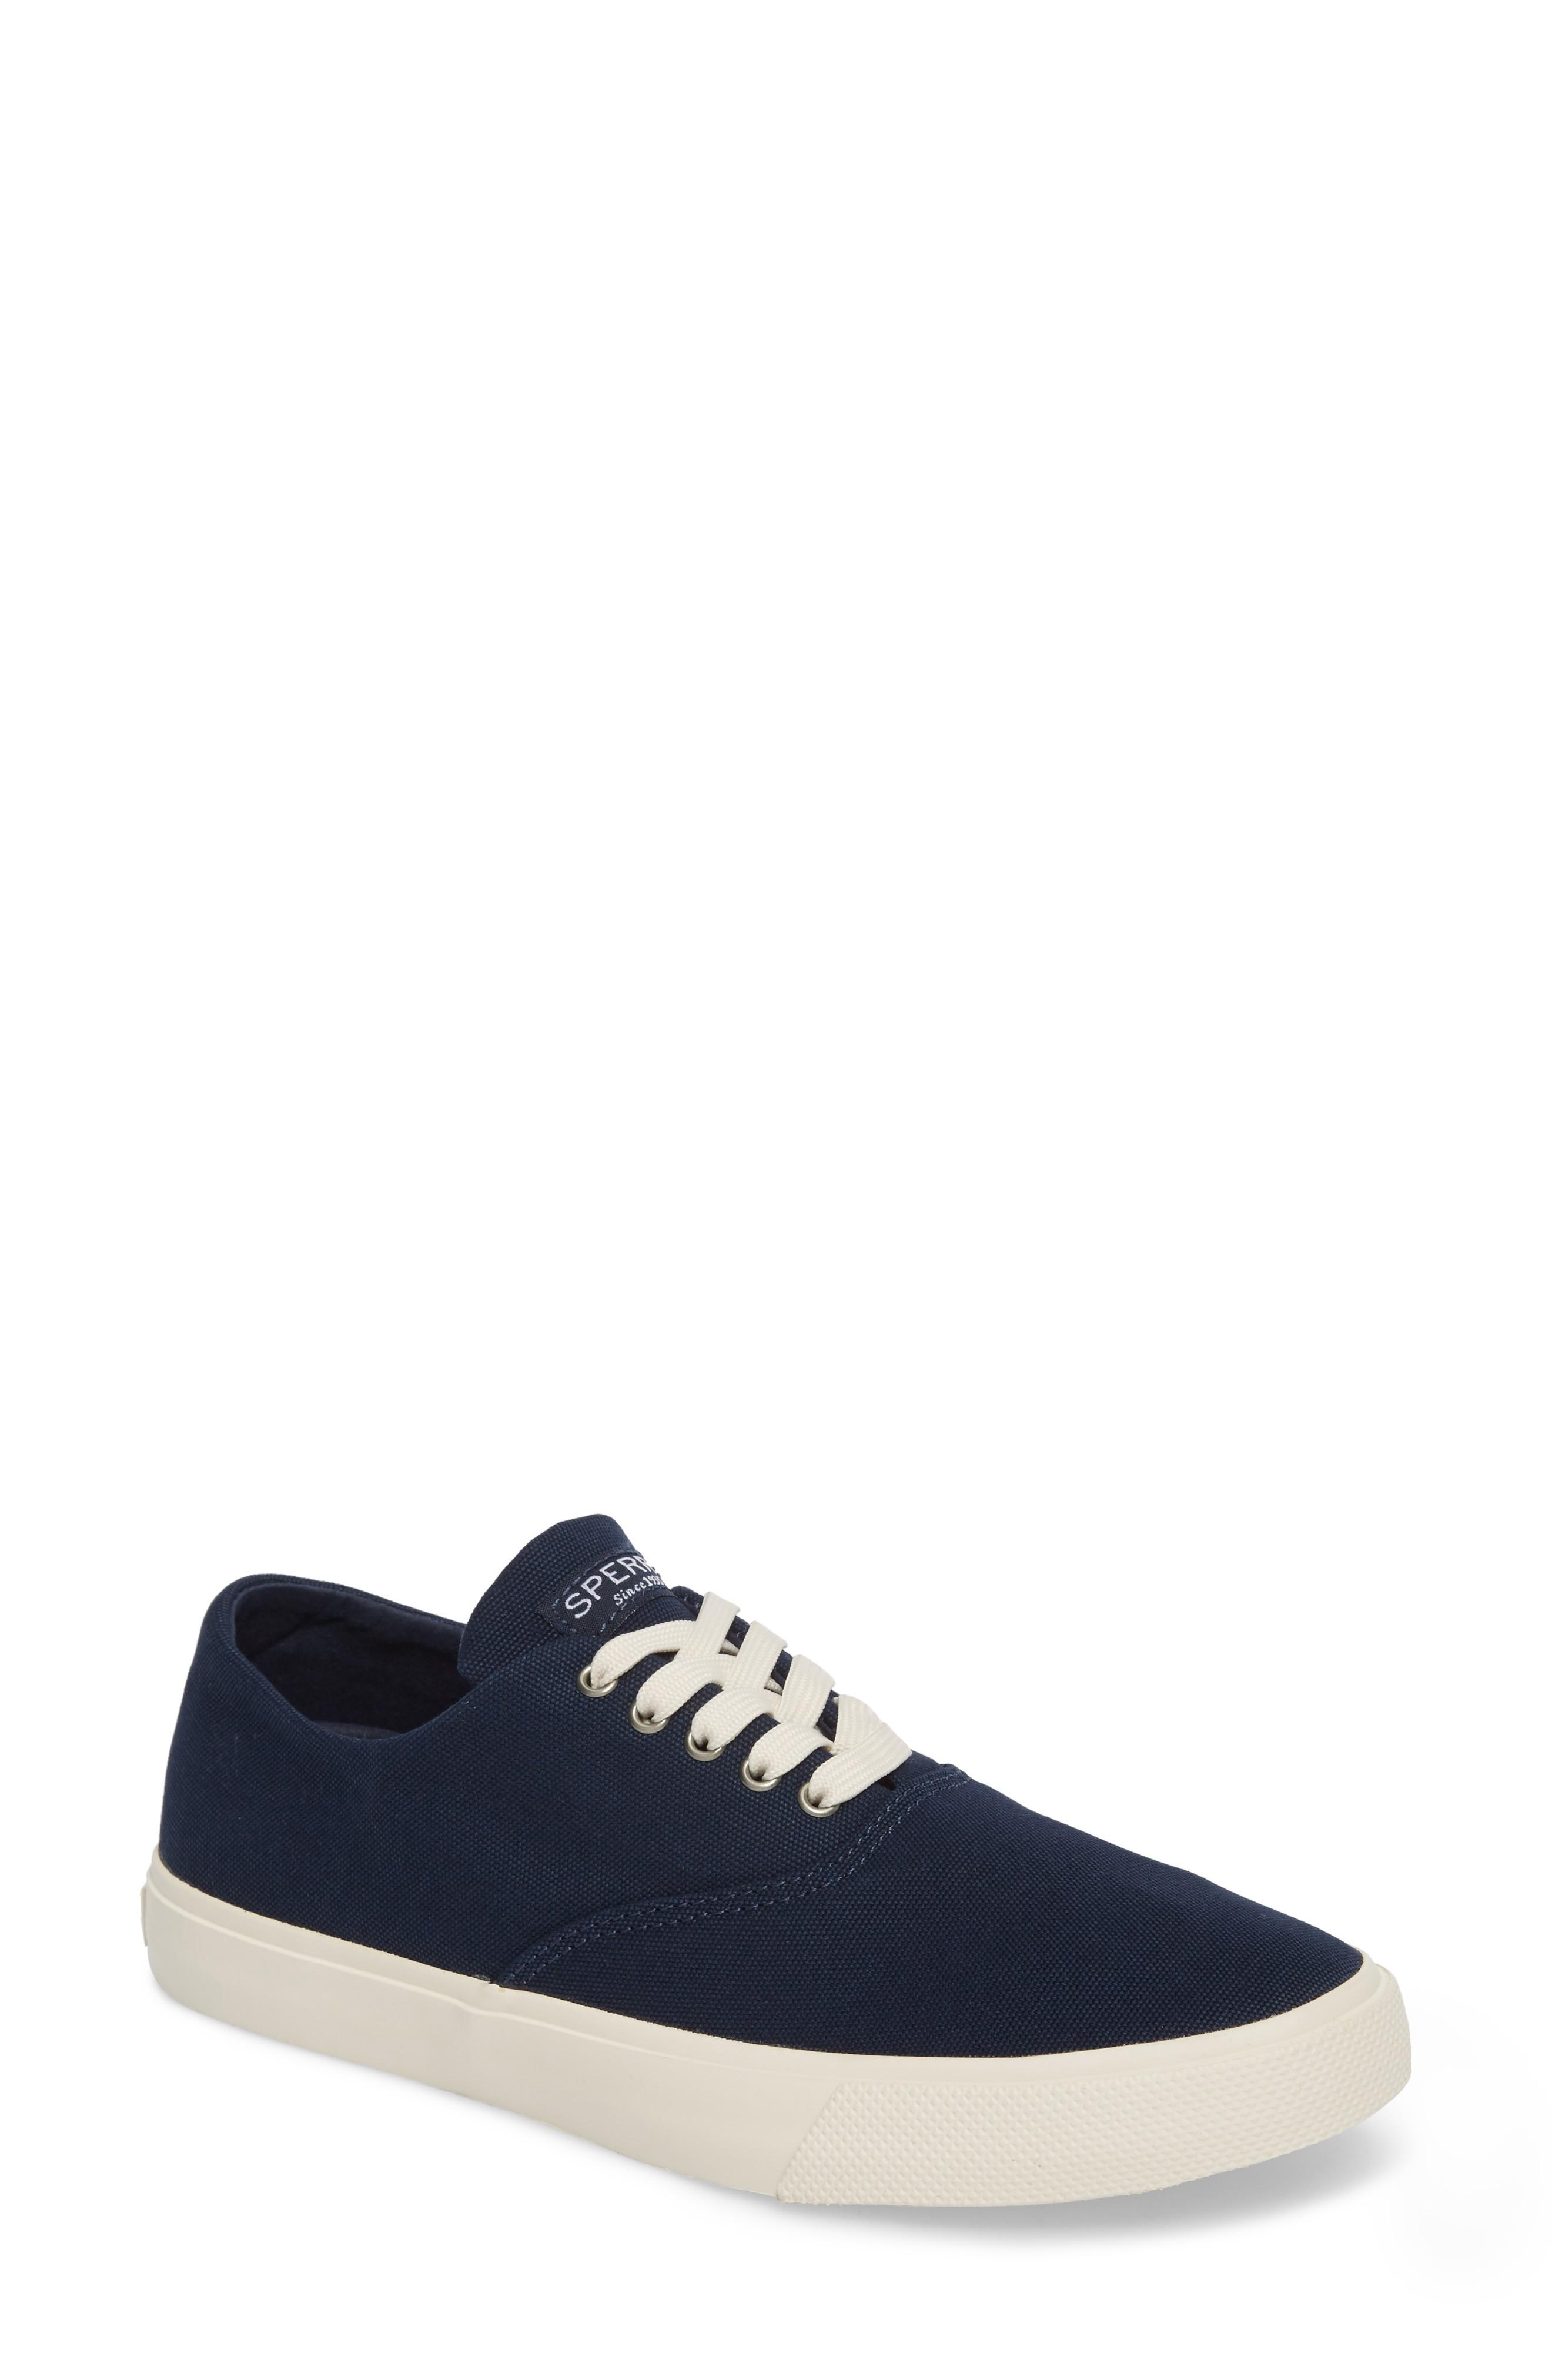 Sperry Captain's Cvo Sneaker In Navy Fabric